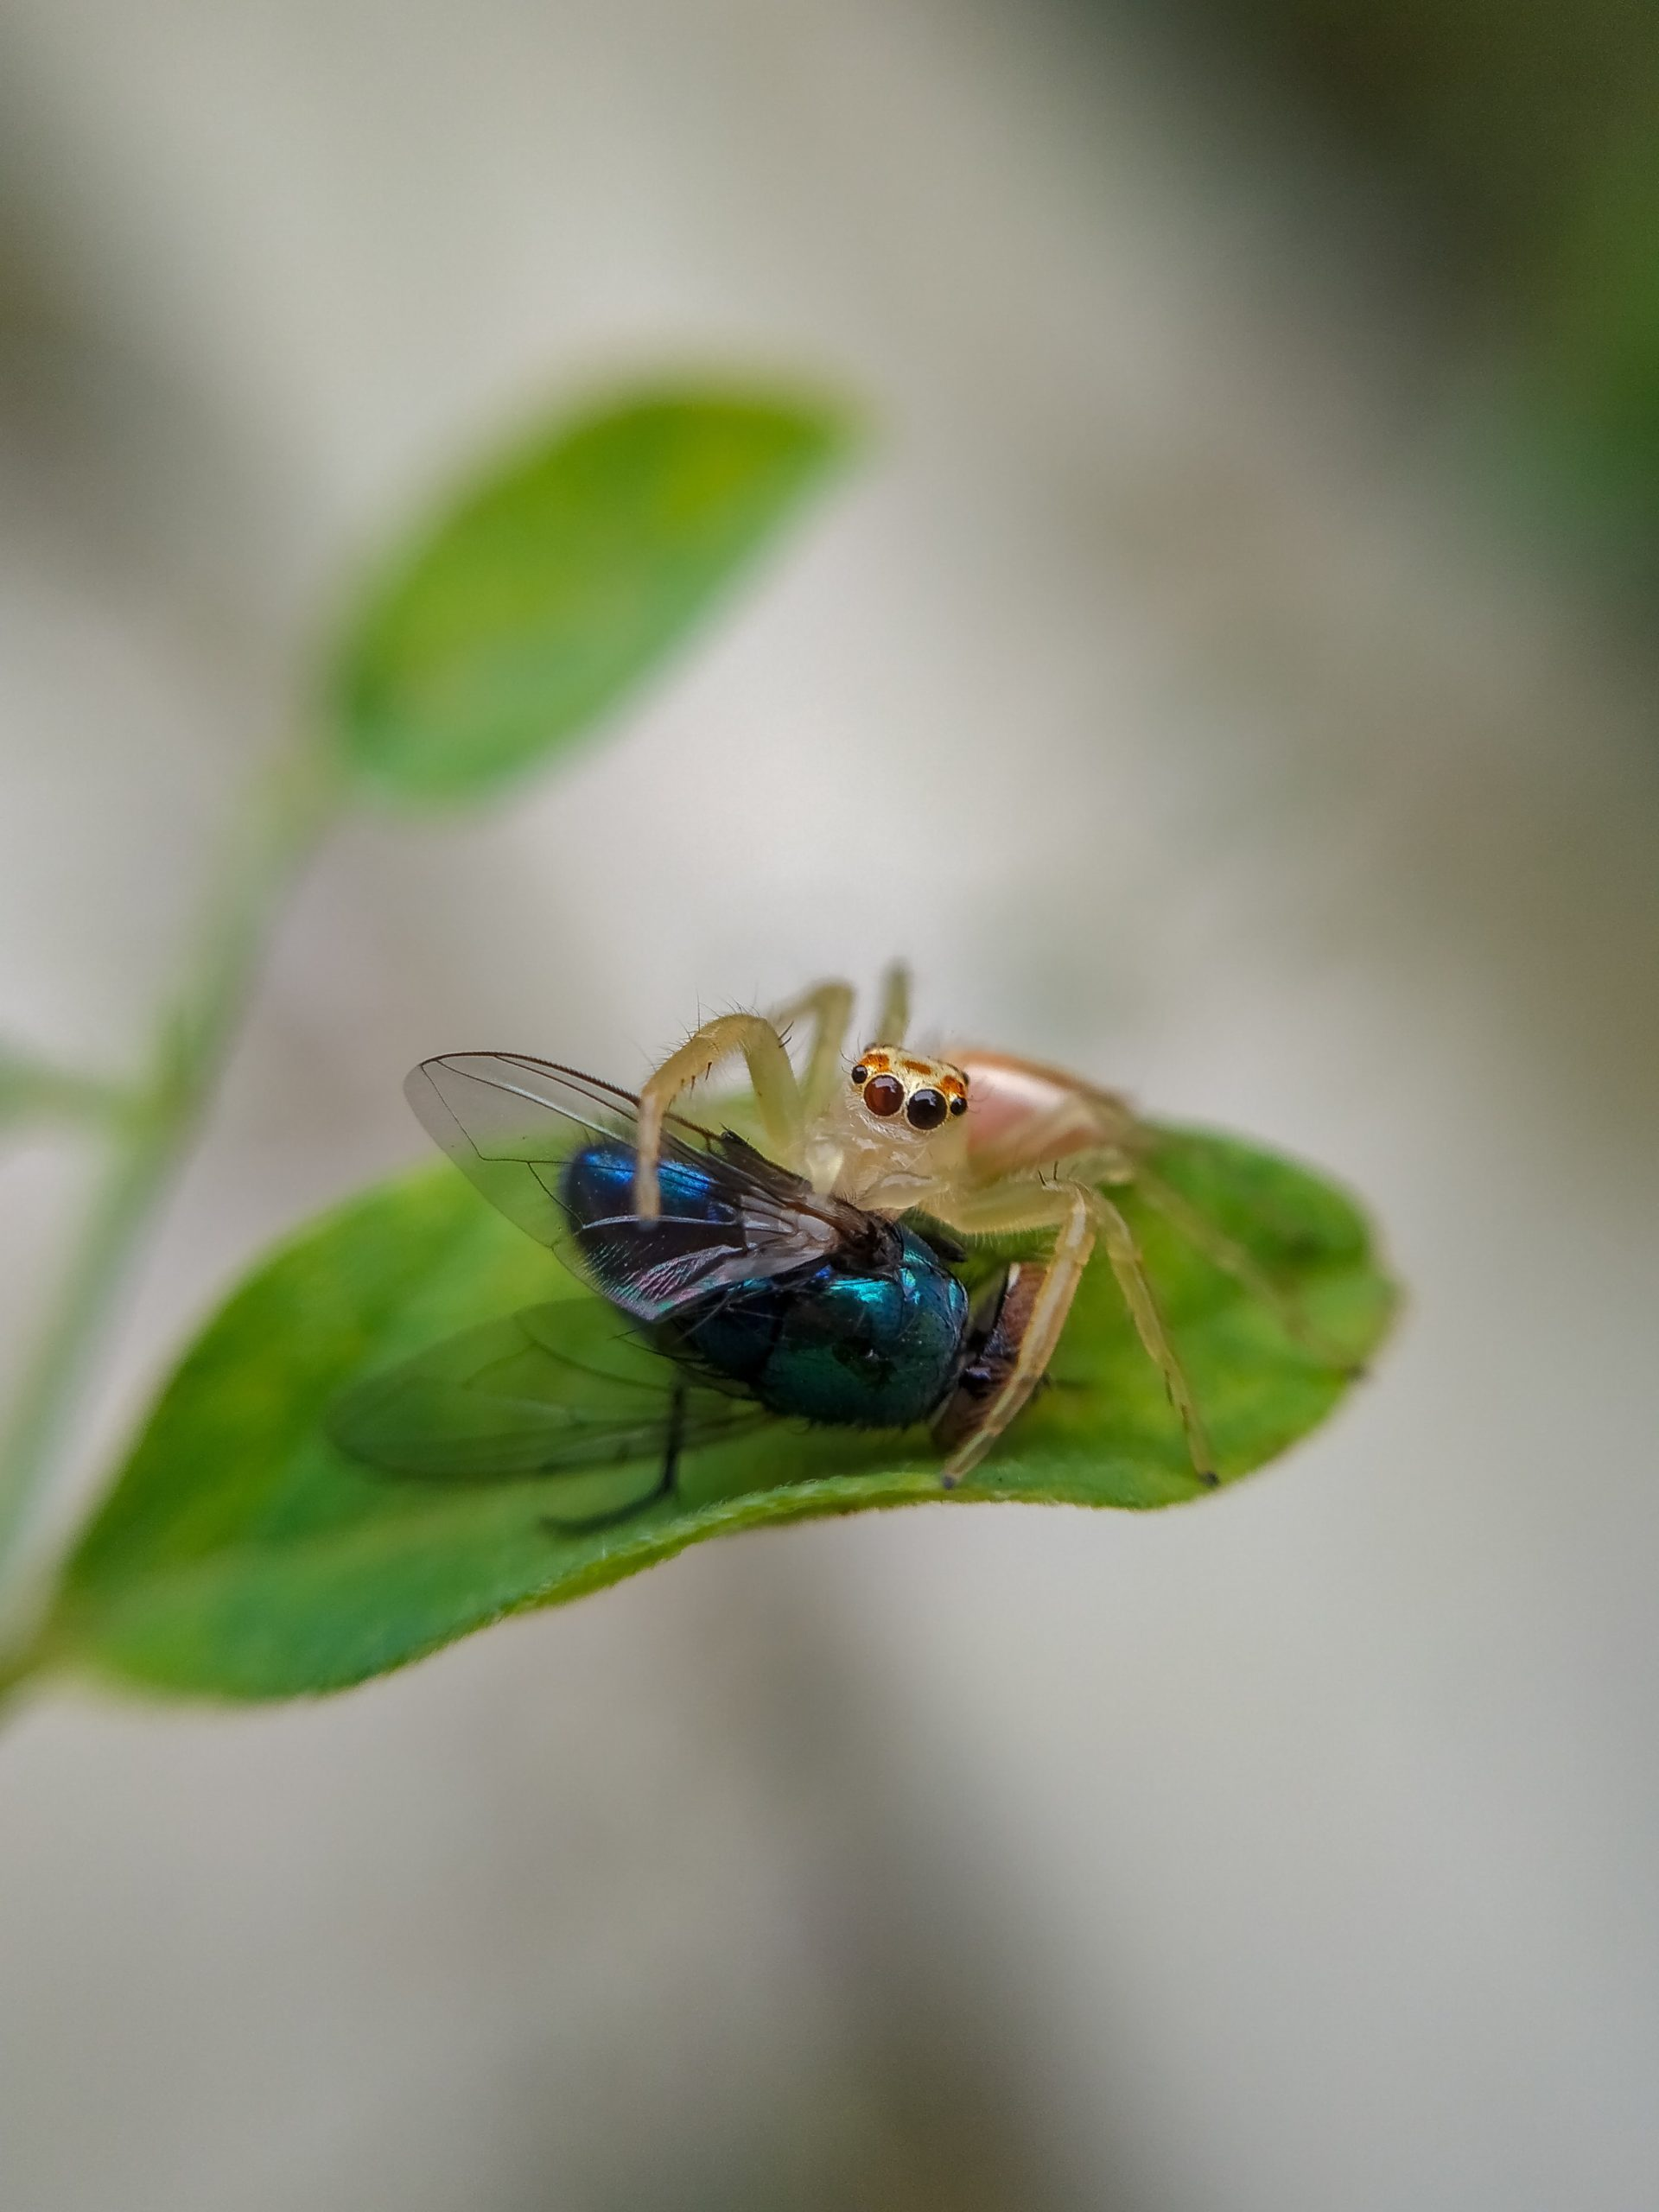 microphotography of two insects on leaf